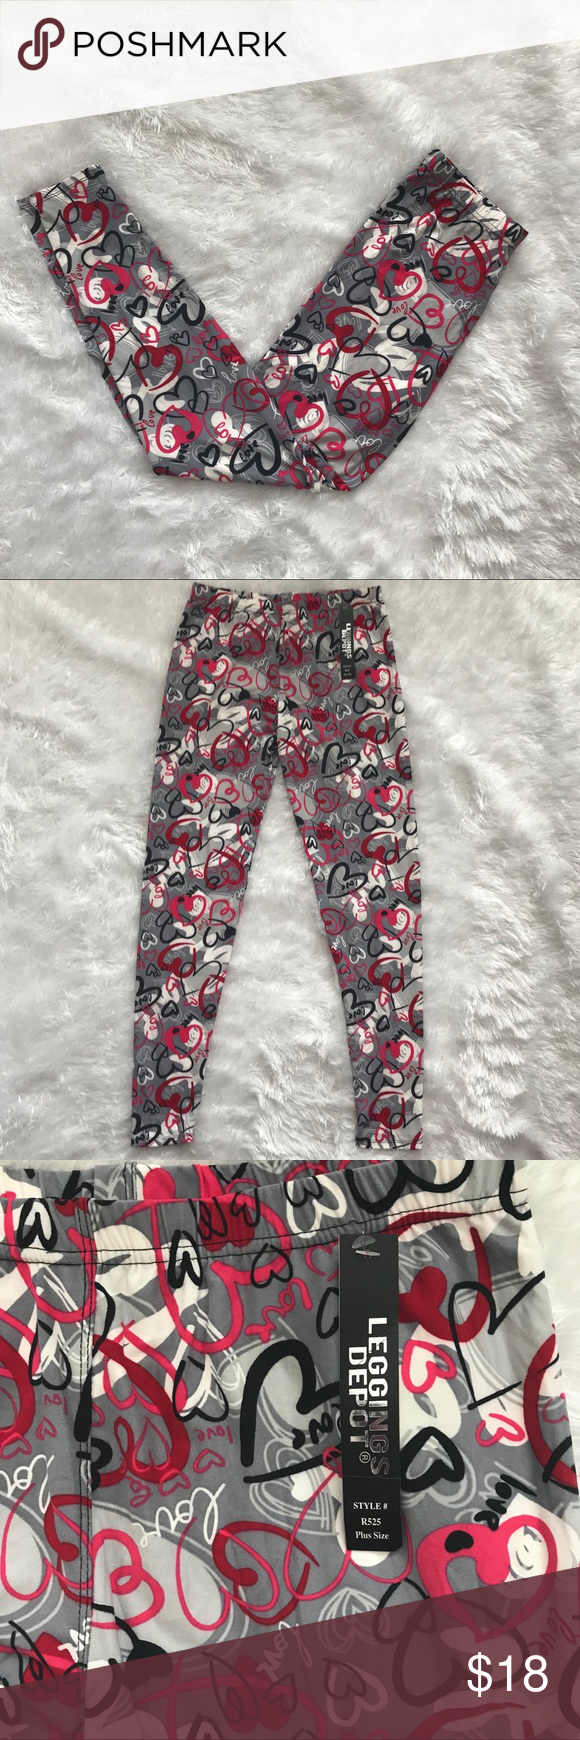 458c965d5ac Leggings Depot Plus Heart Valentine Love Soft TC Brand new with tags. Plus  size -